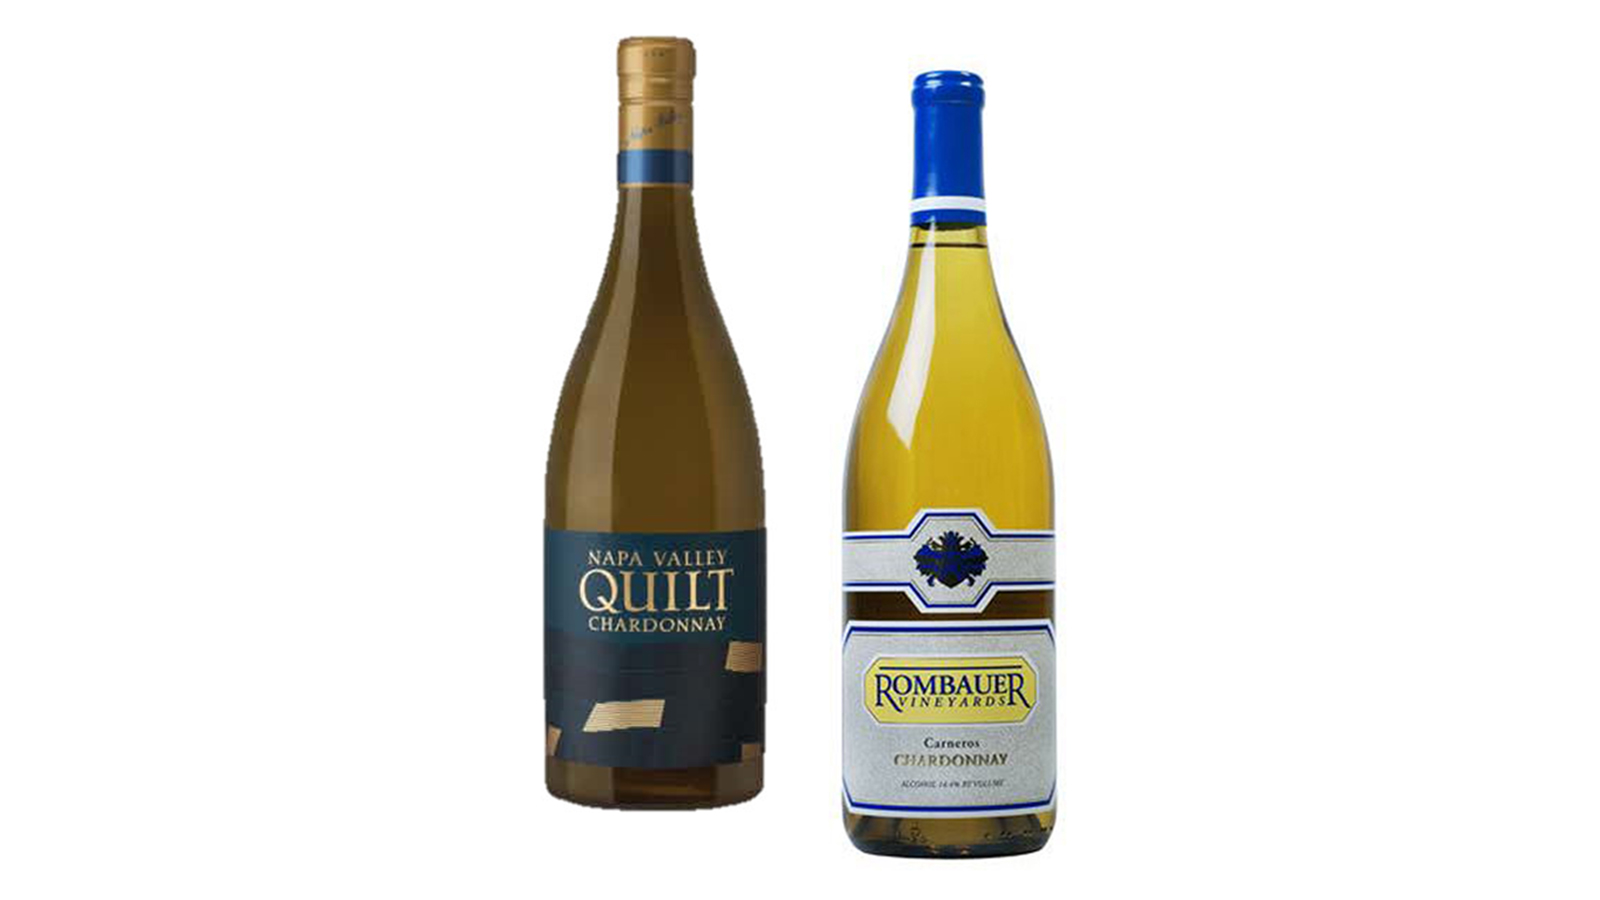 Quilt Napa Valley Chardonnay and Rombauer Chardonnay